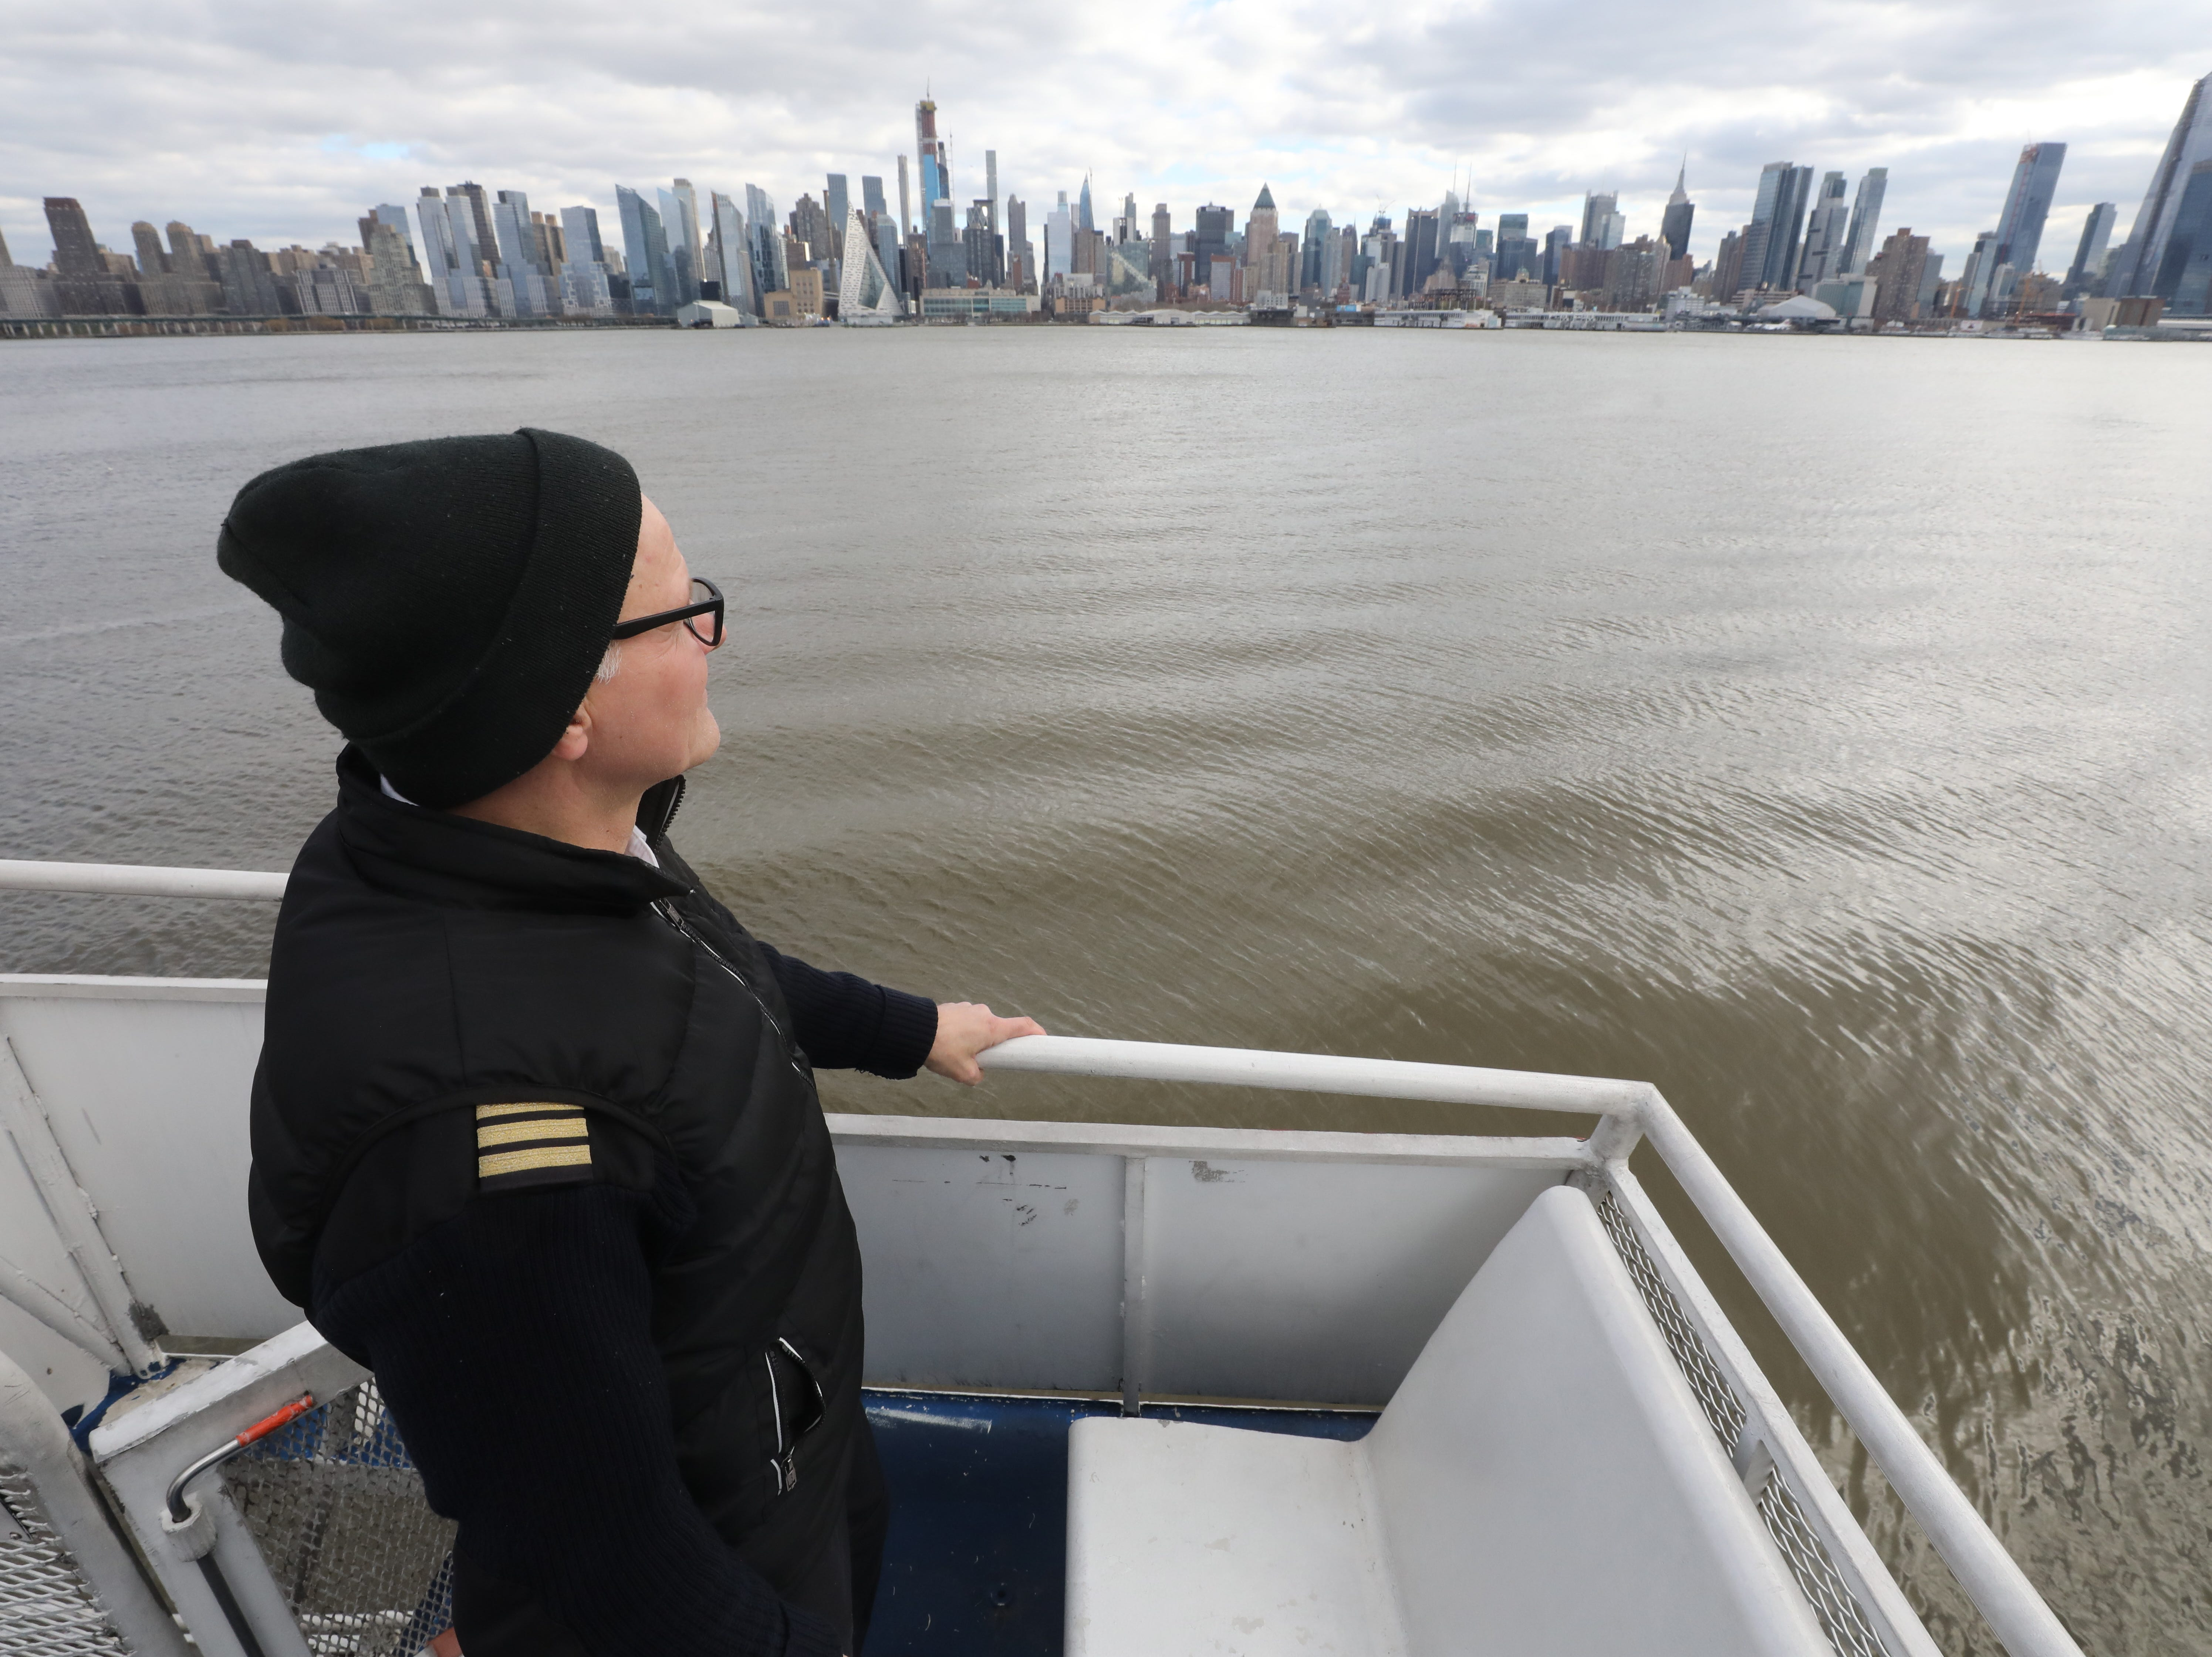 Captain Manny Liba steered the Moira Smith to the site of the downed airliner on the Hudson 10 years ago where he and his crew saved 14 people. Here on January 9, 2019 he overlooks Manhattan and the site of the rescue